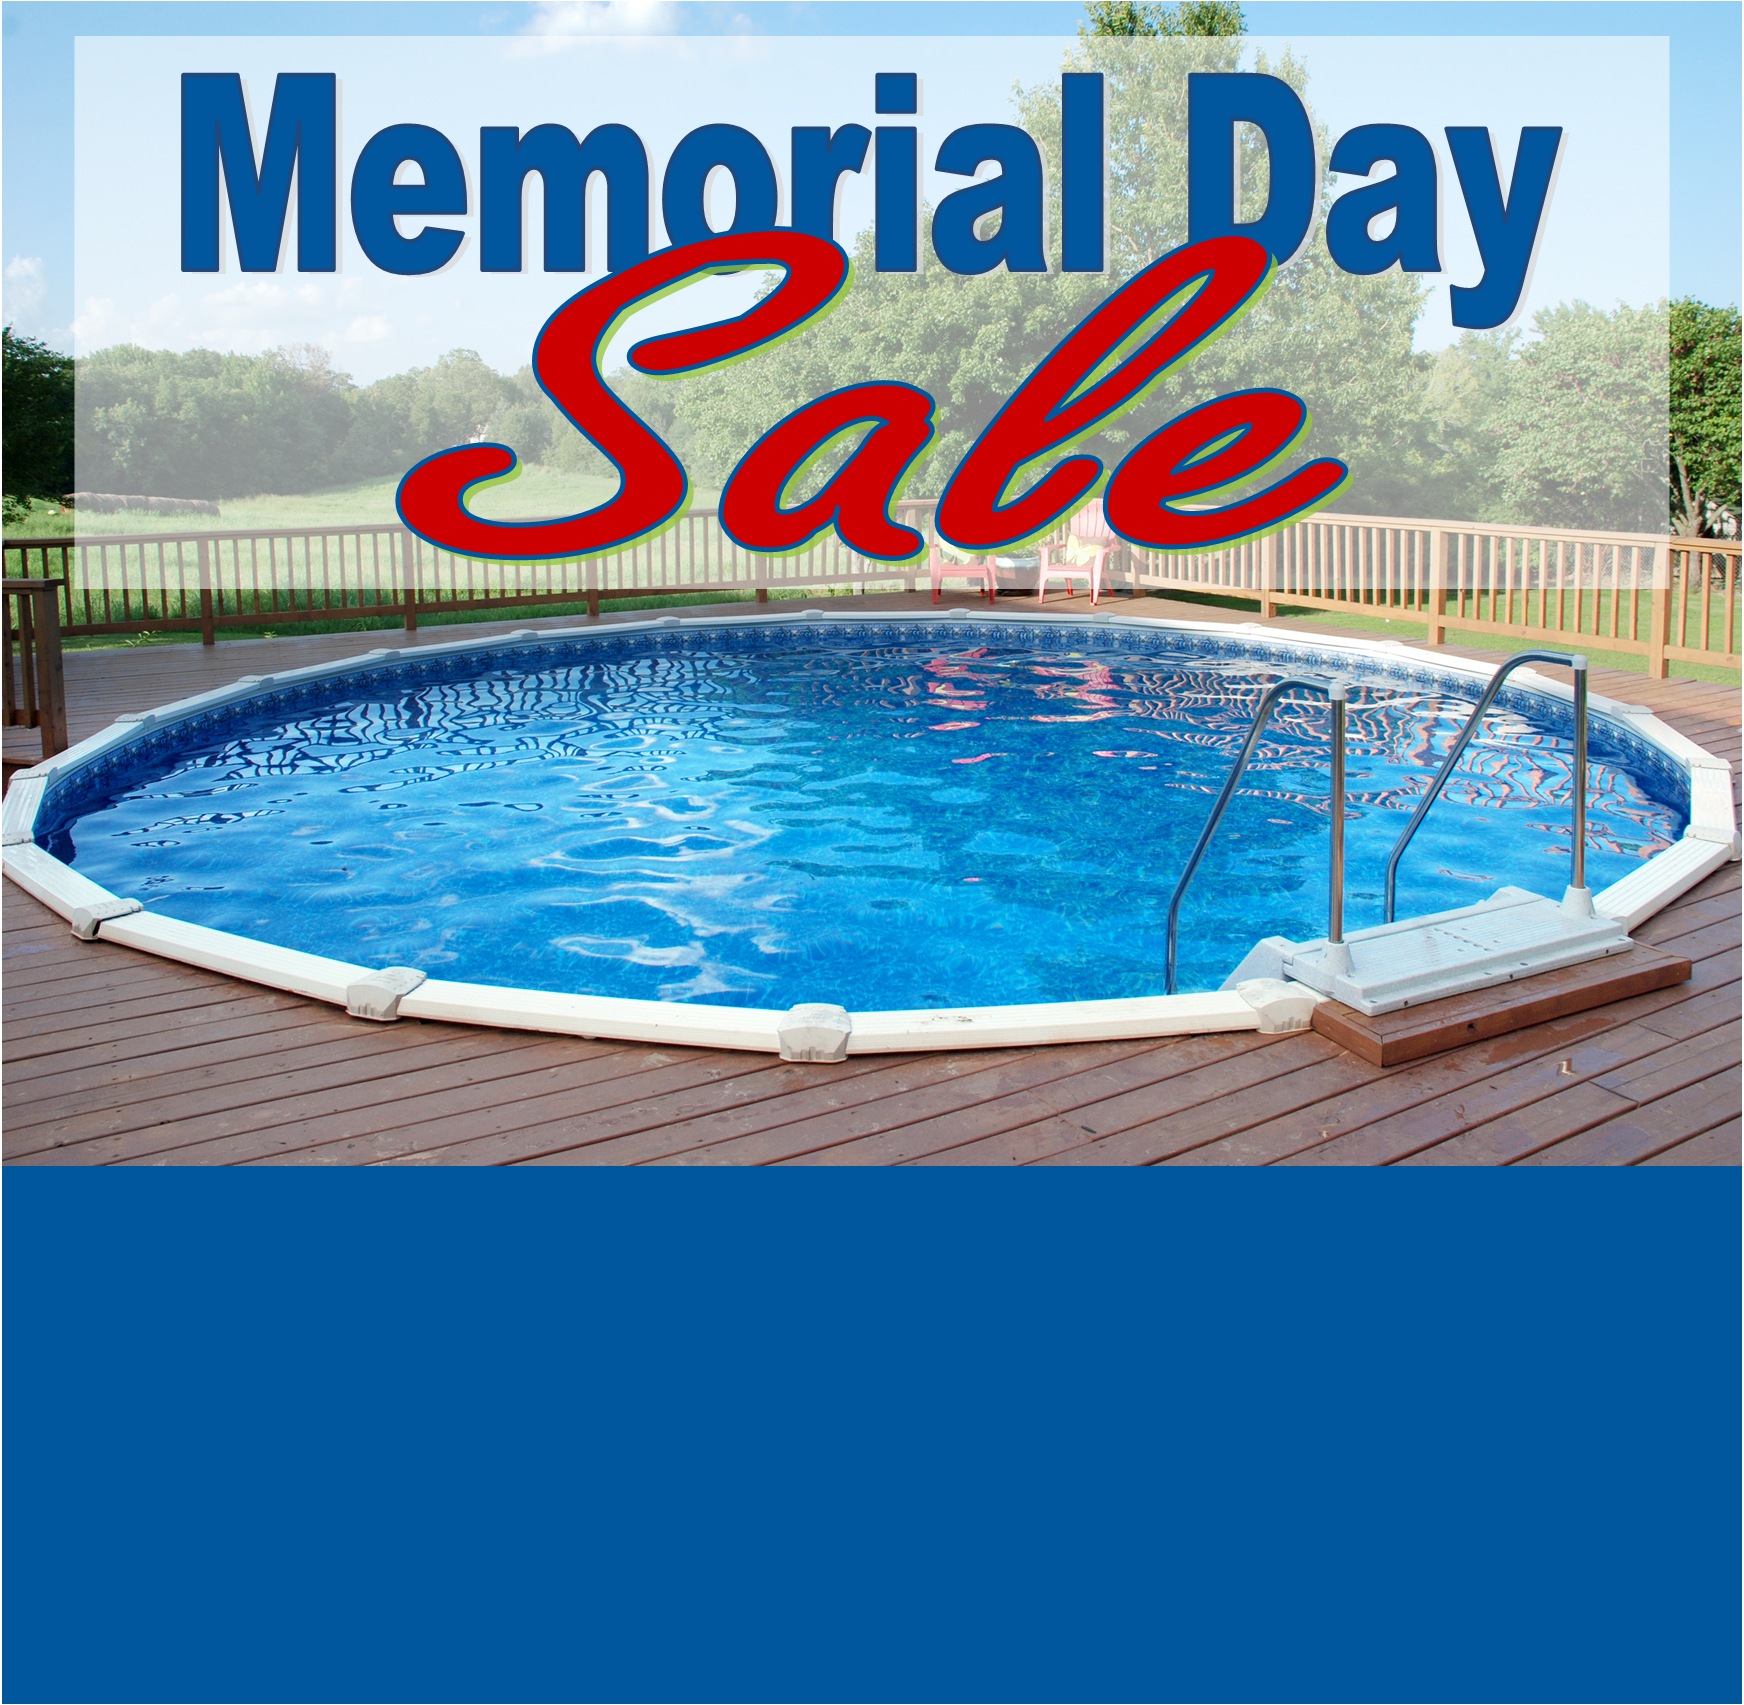 4 5 Person Hot Tubs And Spas Zagers Pool And Spazagers Pool And Spa